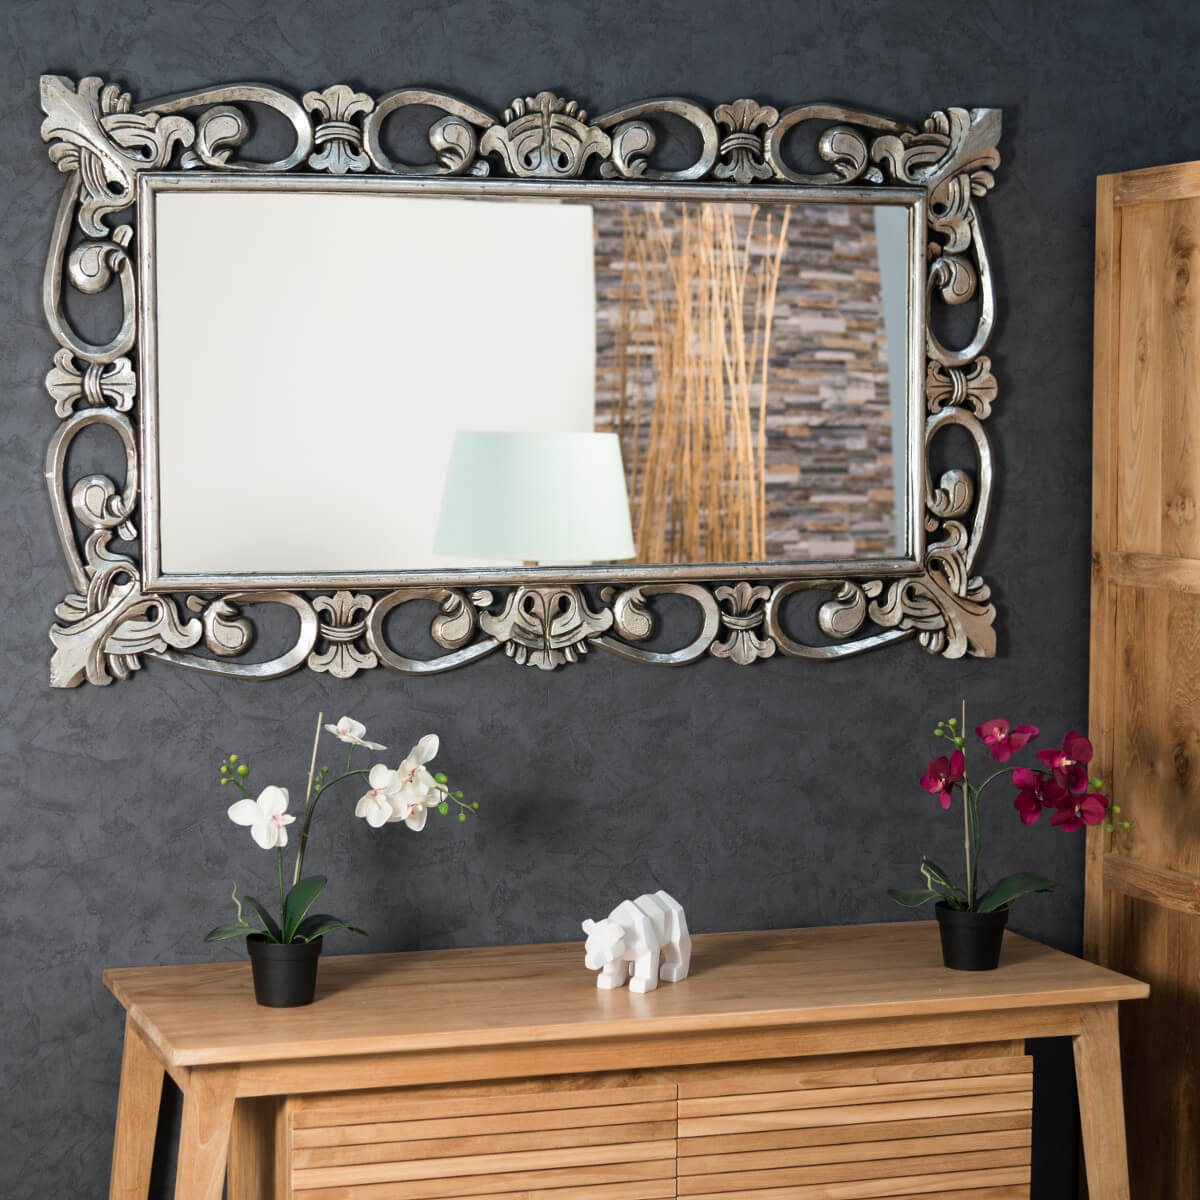 miroir cordoue en bois patin argent 140 x 80. Black Bedroom Furniture Sets. Home Design Ideas